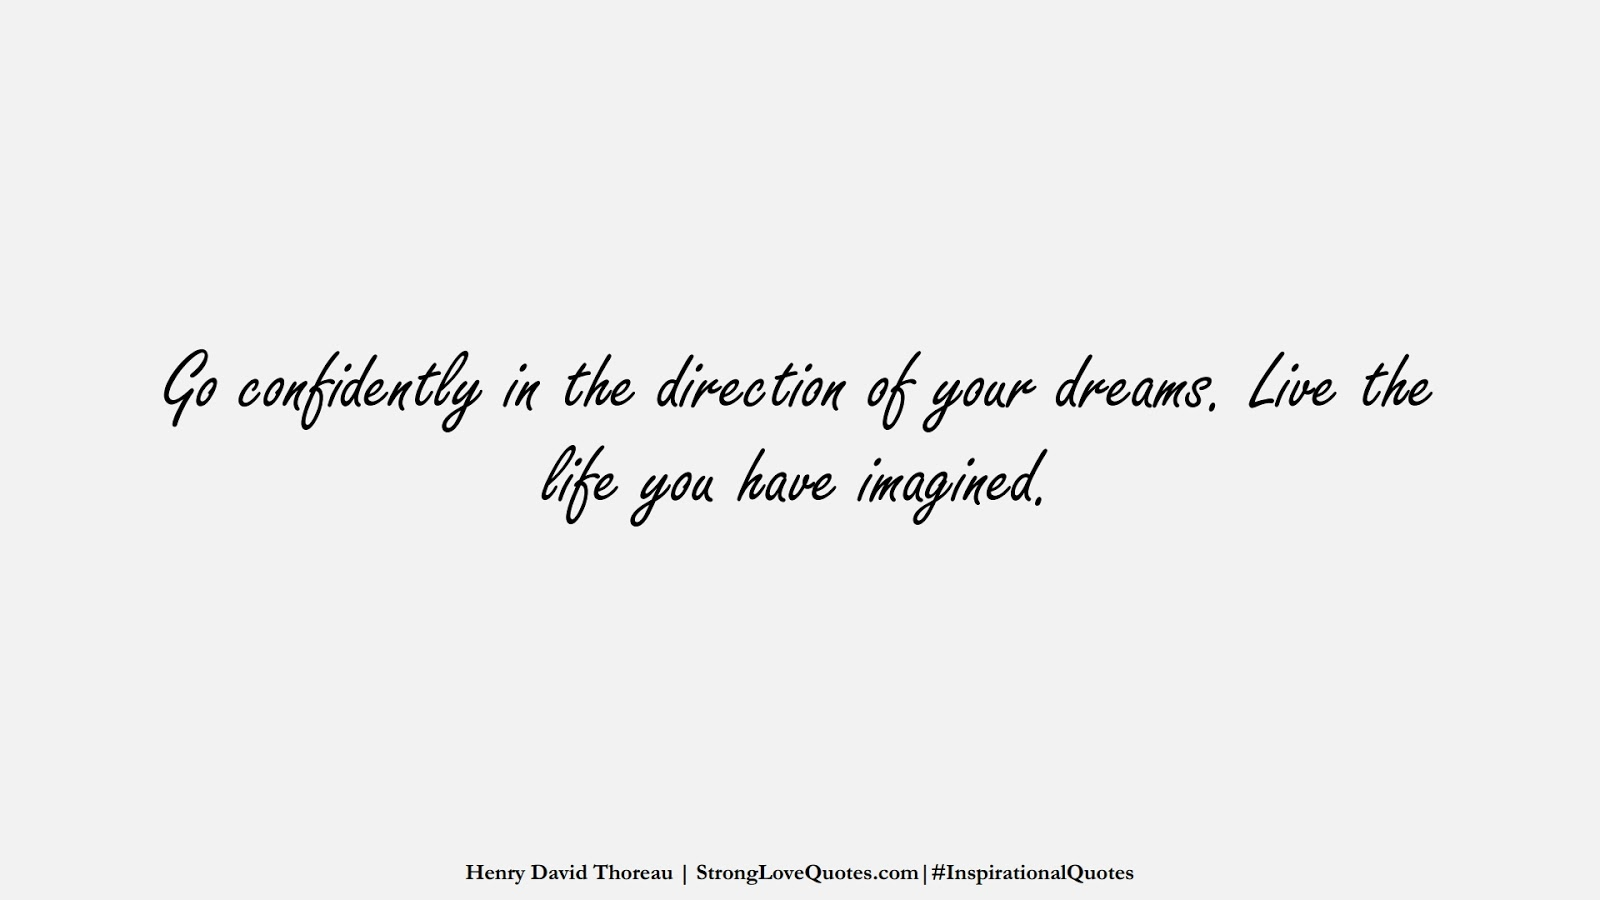 Go confidently in the direction of your dreams. Live the life you have imagined. (Henry David Thoreau);  #InspirationalQuotes